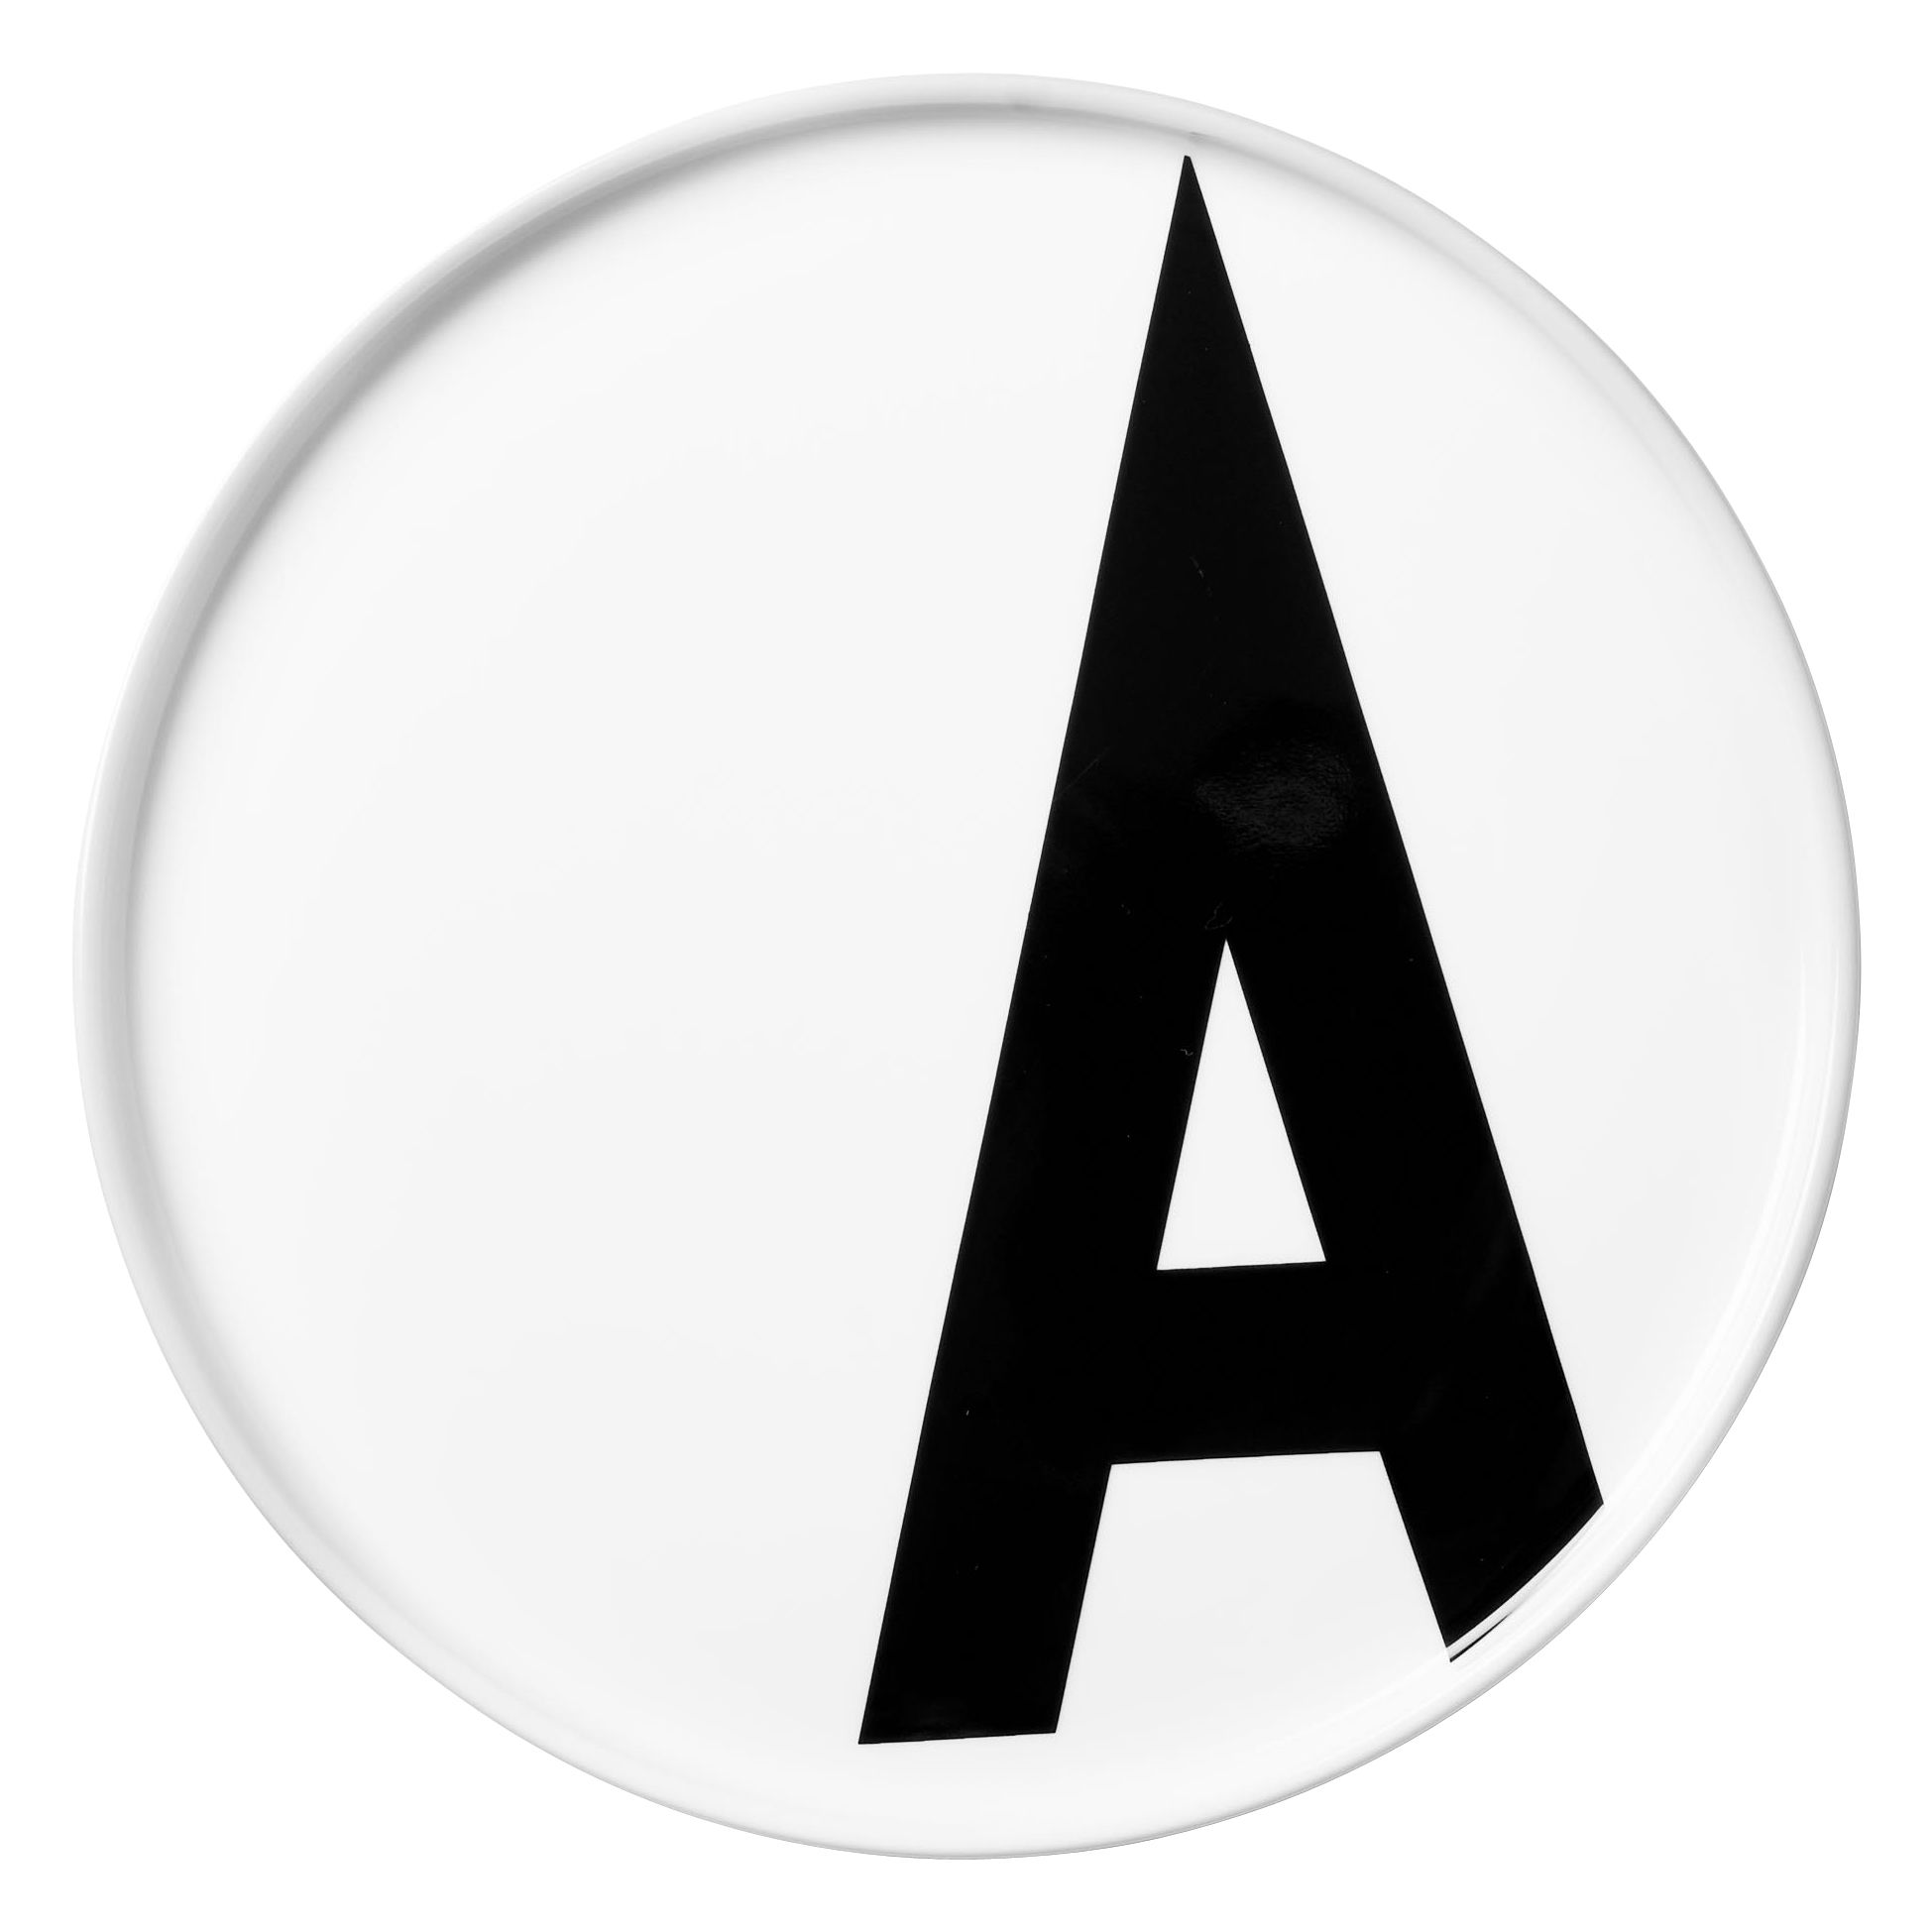 Tableware - Plates - Arne Jacobsen Plate - Porcelain - A by Design Letters - White / A - China